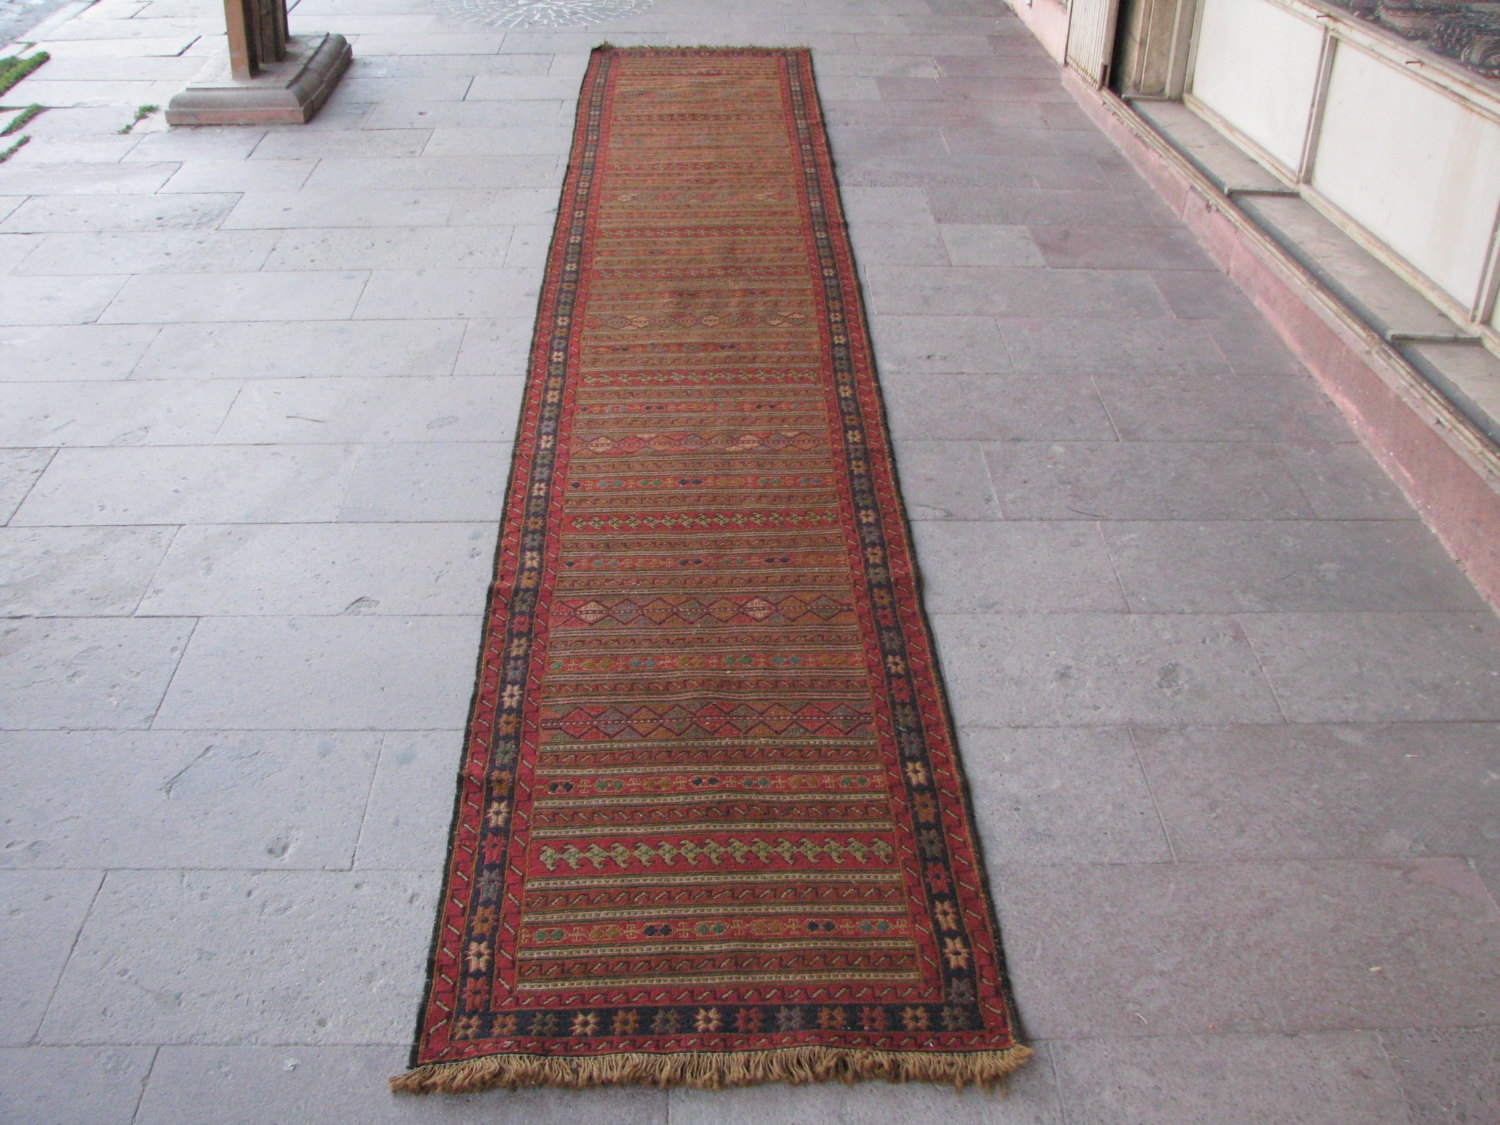 10 Foot Wool Runner Rugs